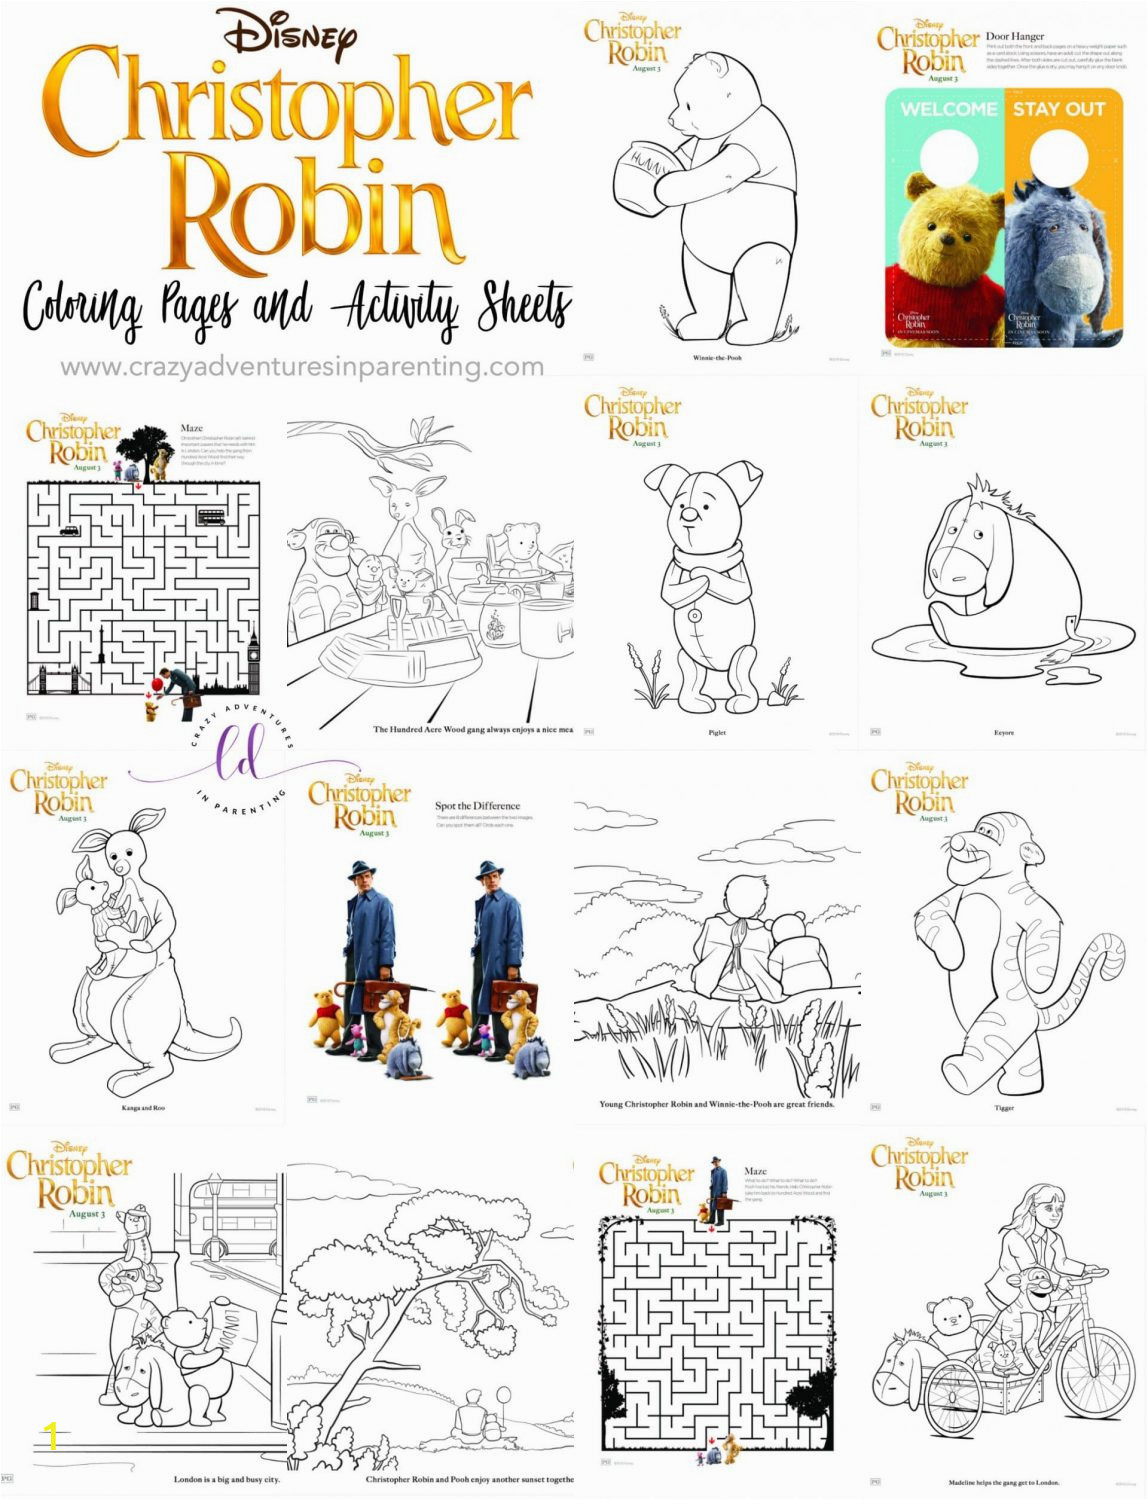 Christopher Robin Coloring Pages and Activity Sheets 1148x1500